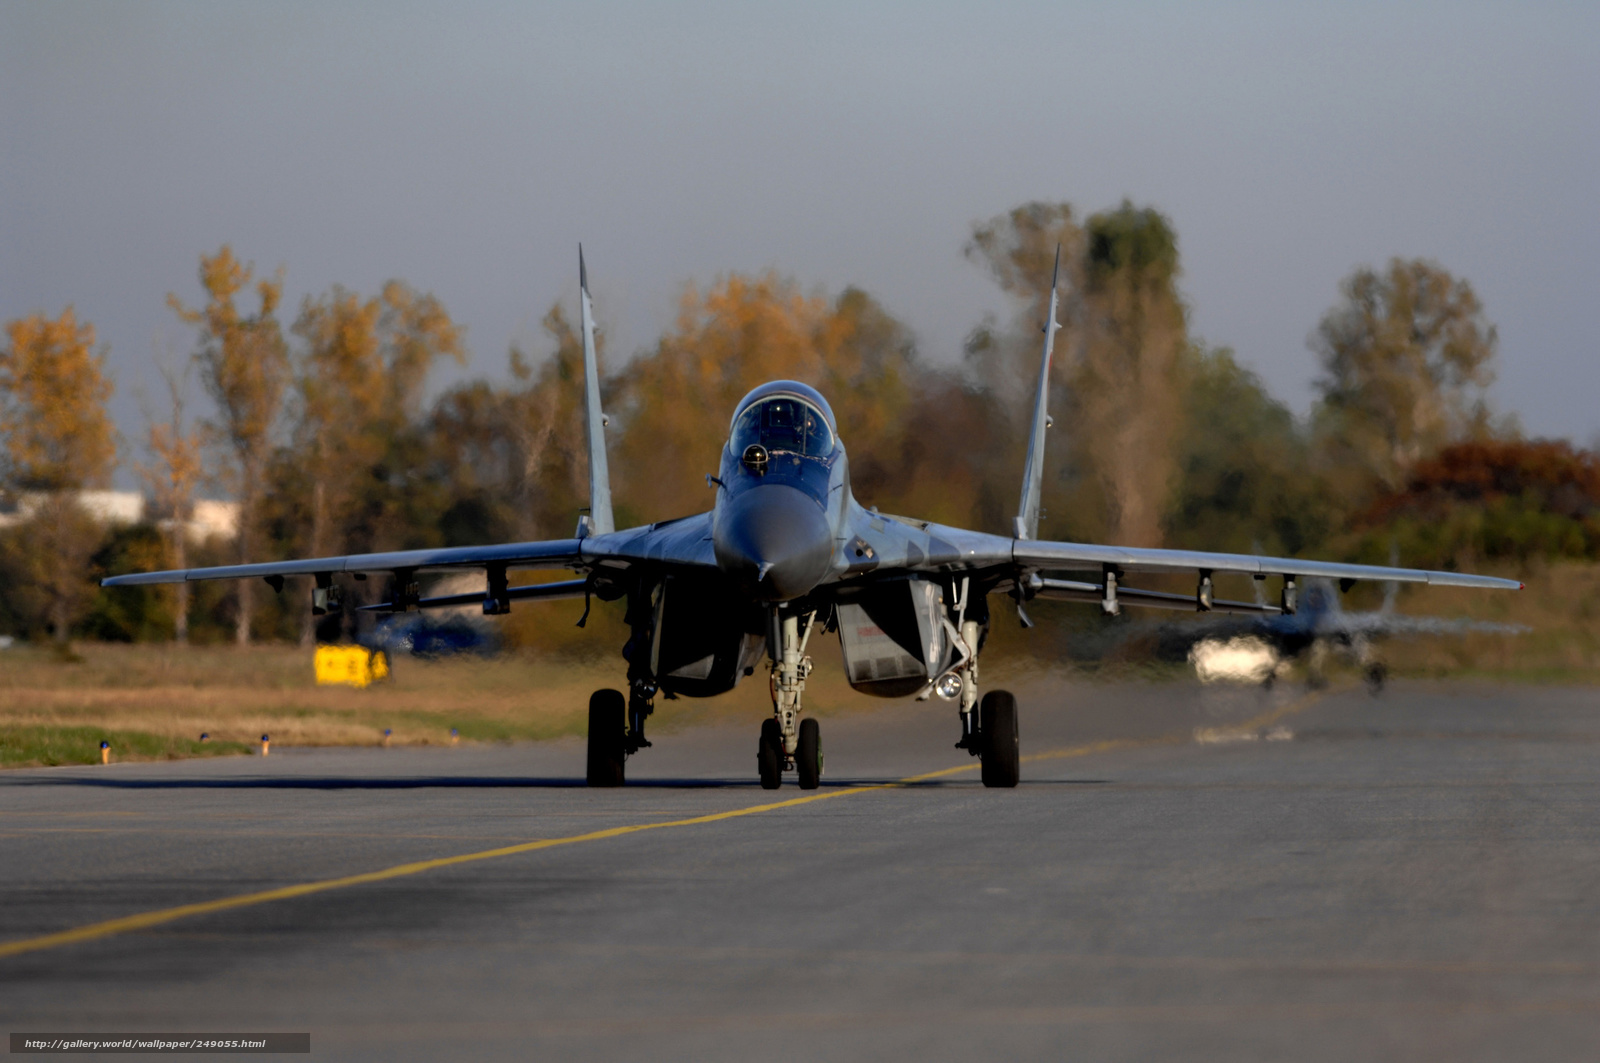 wallpaper, Mikoyan wallpaper, MiG-29 wallpaper, Aircraft wallpaper ...